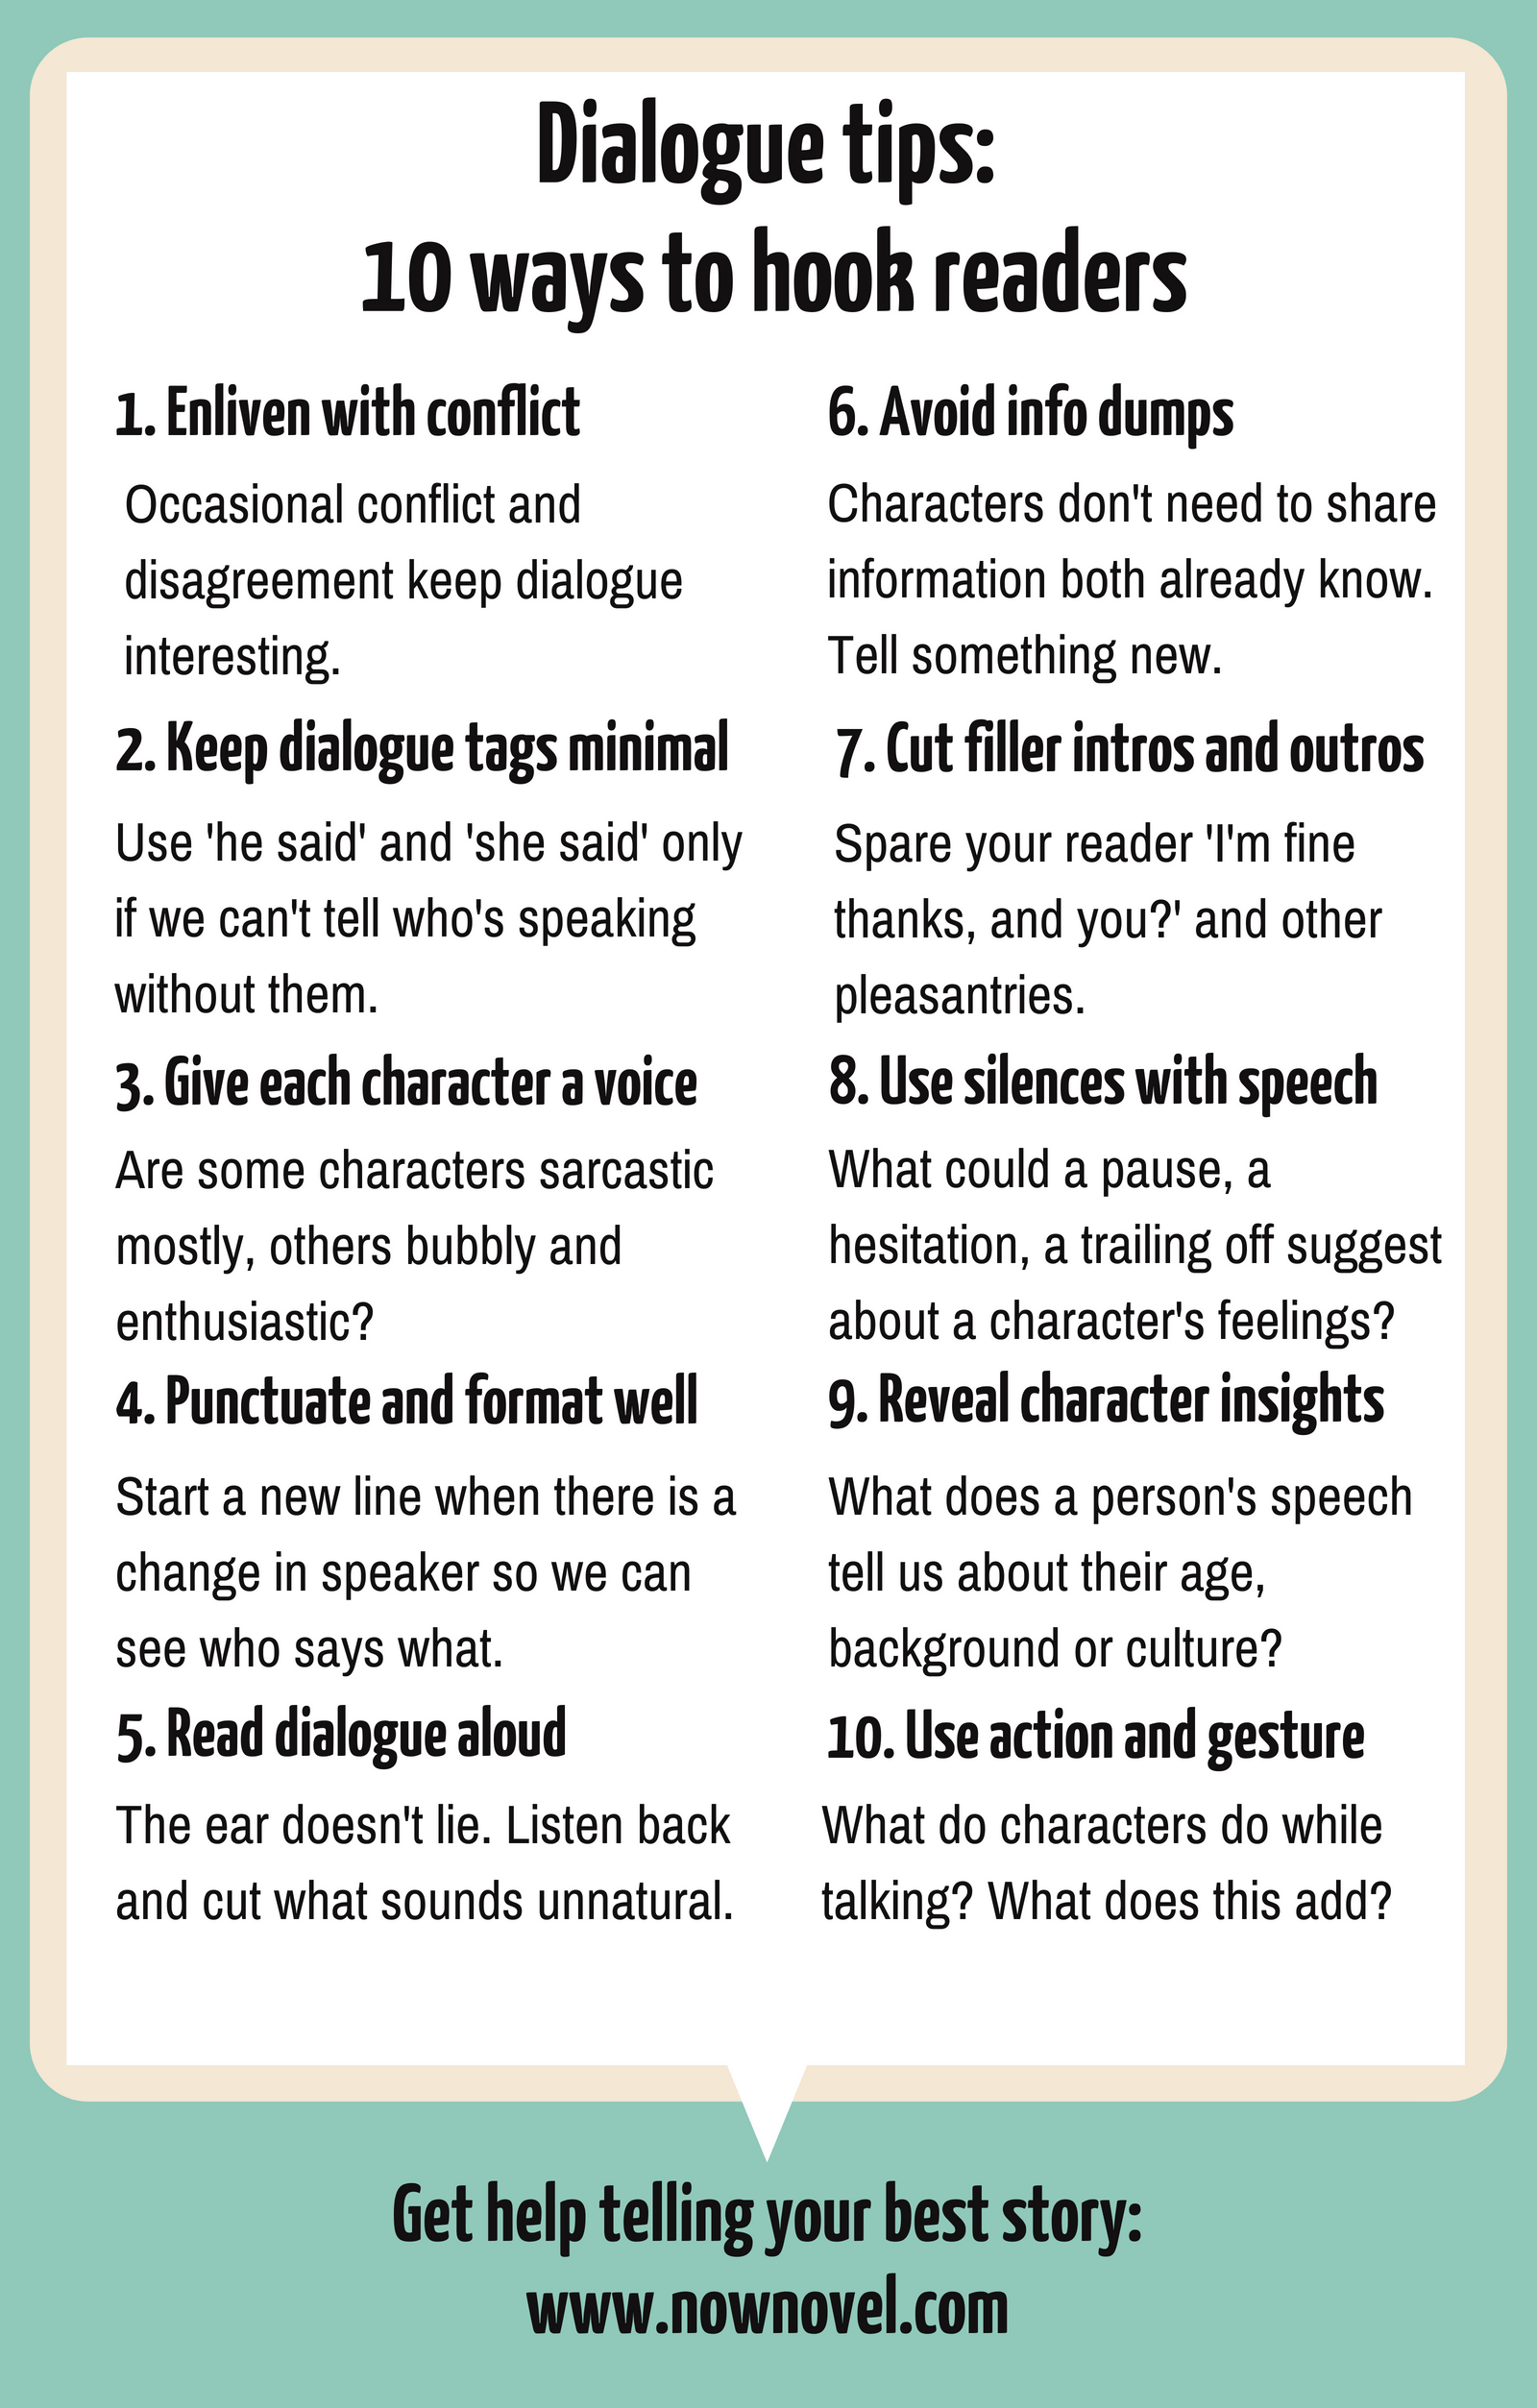 18 Dialogue Tips to Hook Readers  Now Novel  Book writing tips